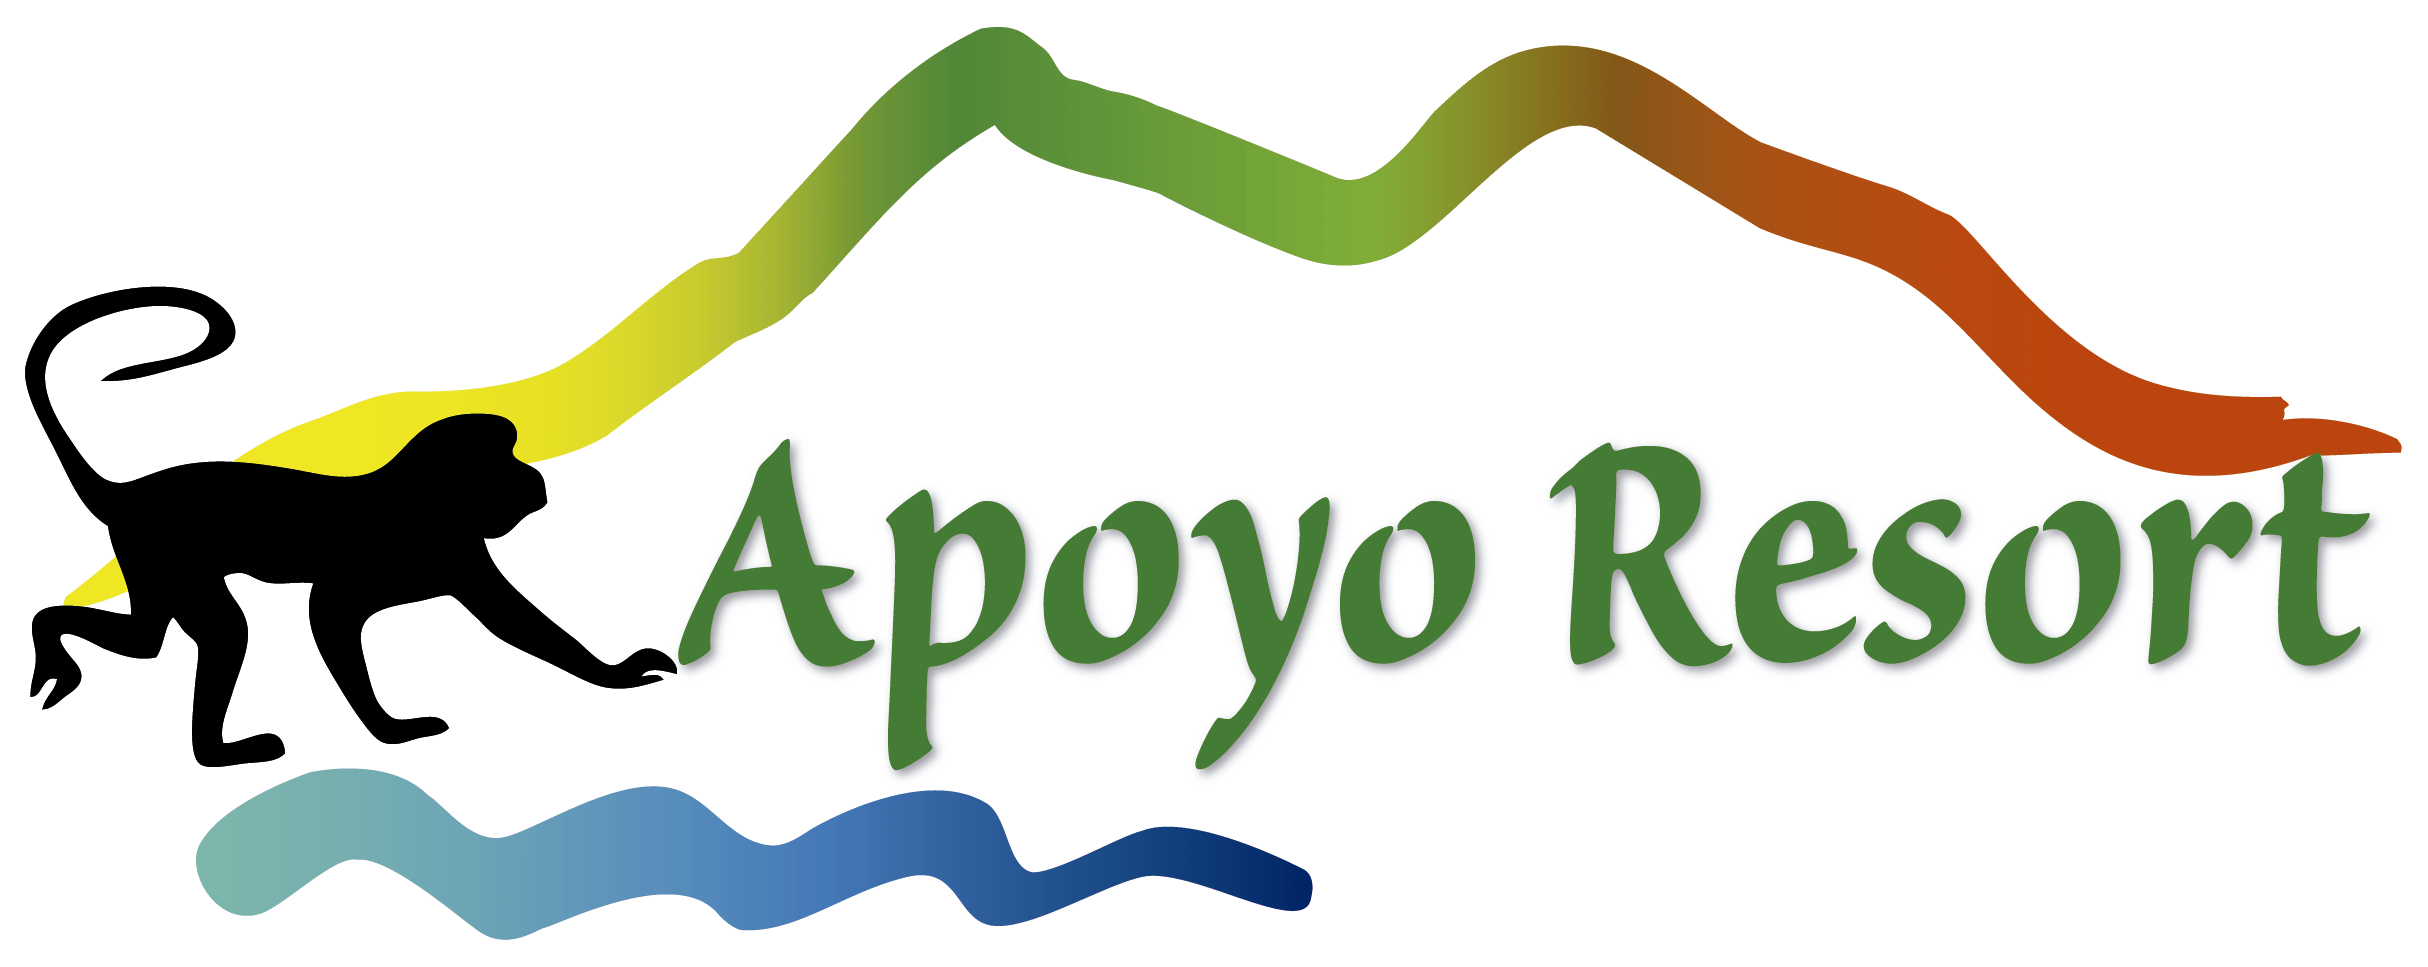 Apoyo Resort logo (No white background)